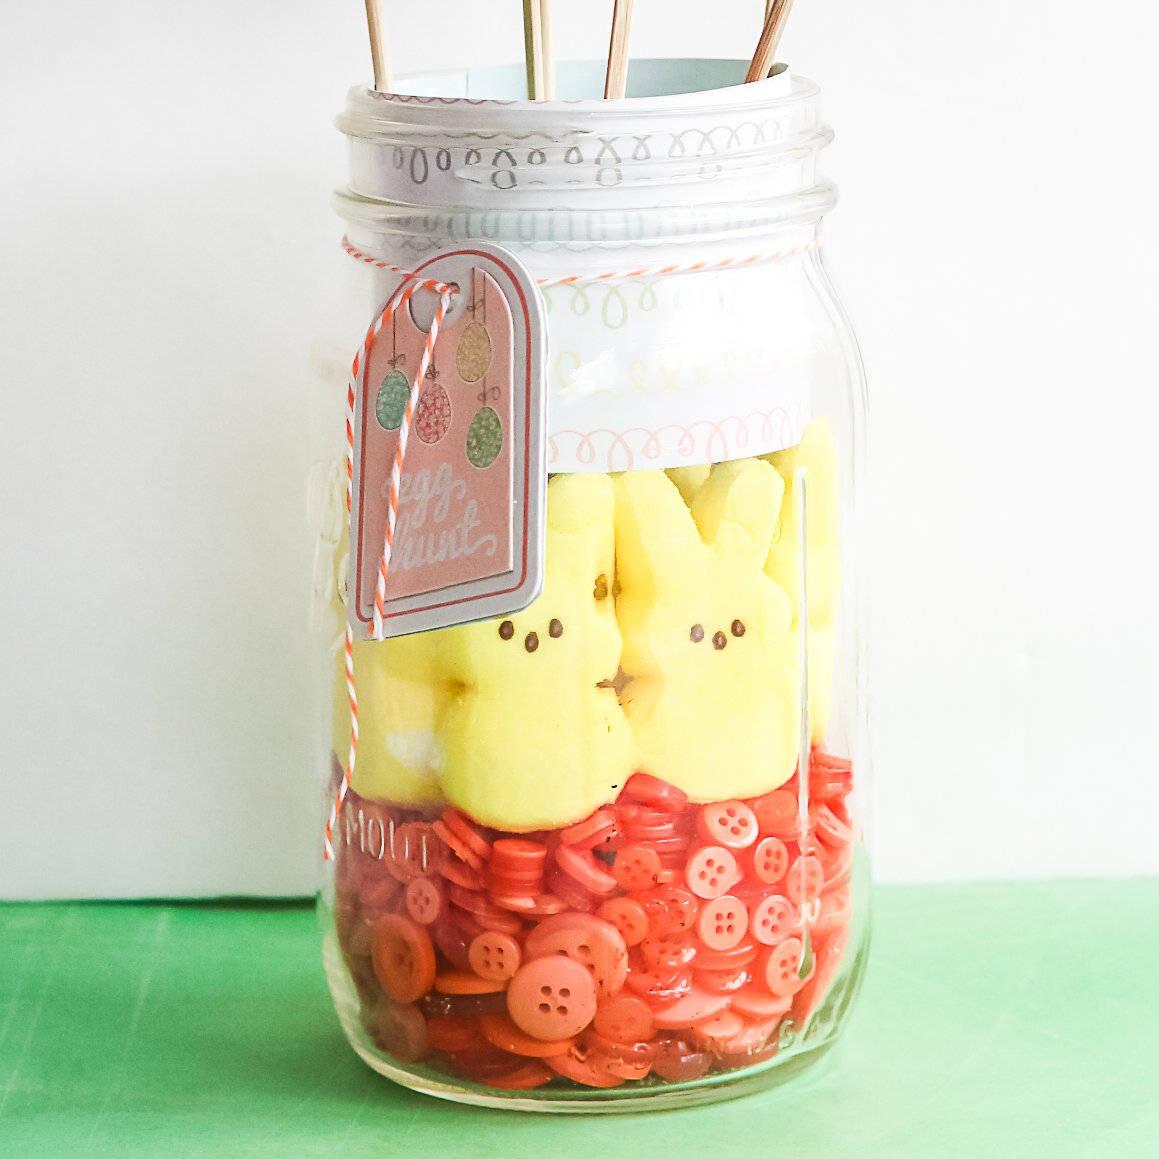 peeps and buttons in a glass jar